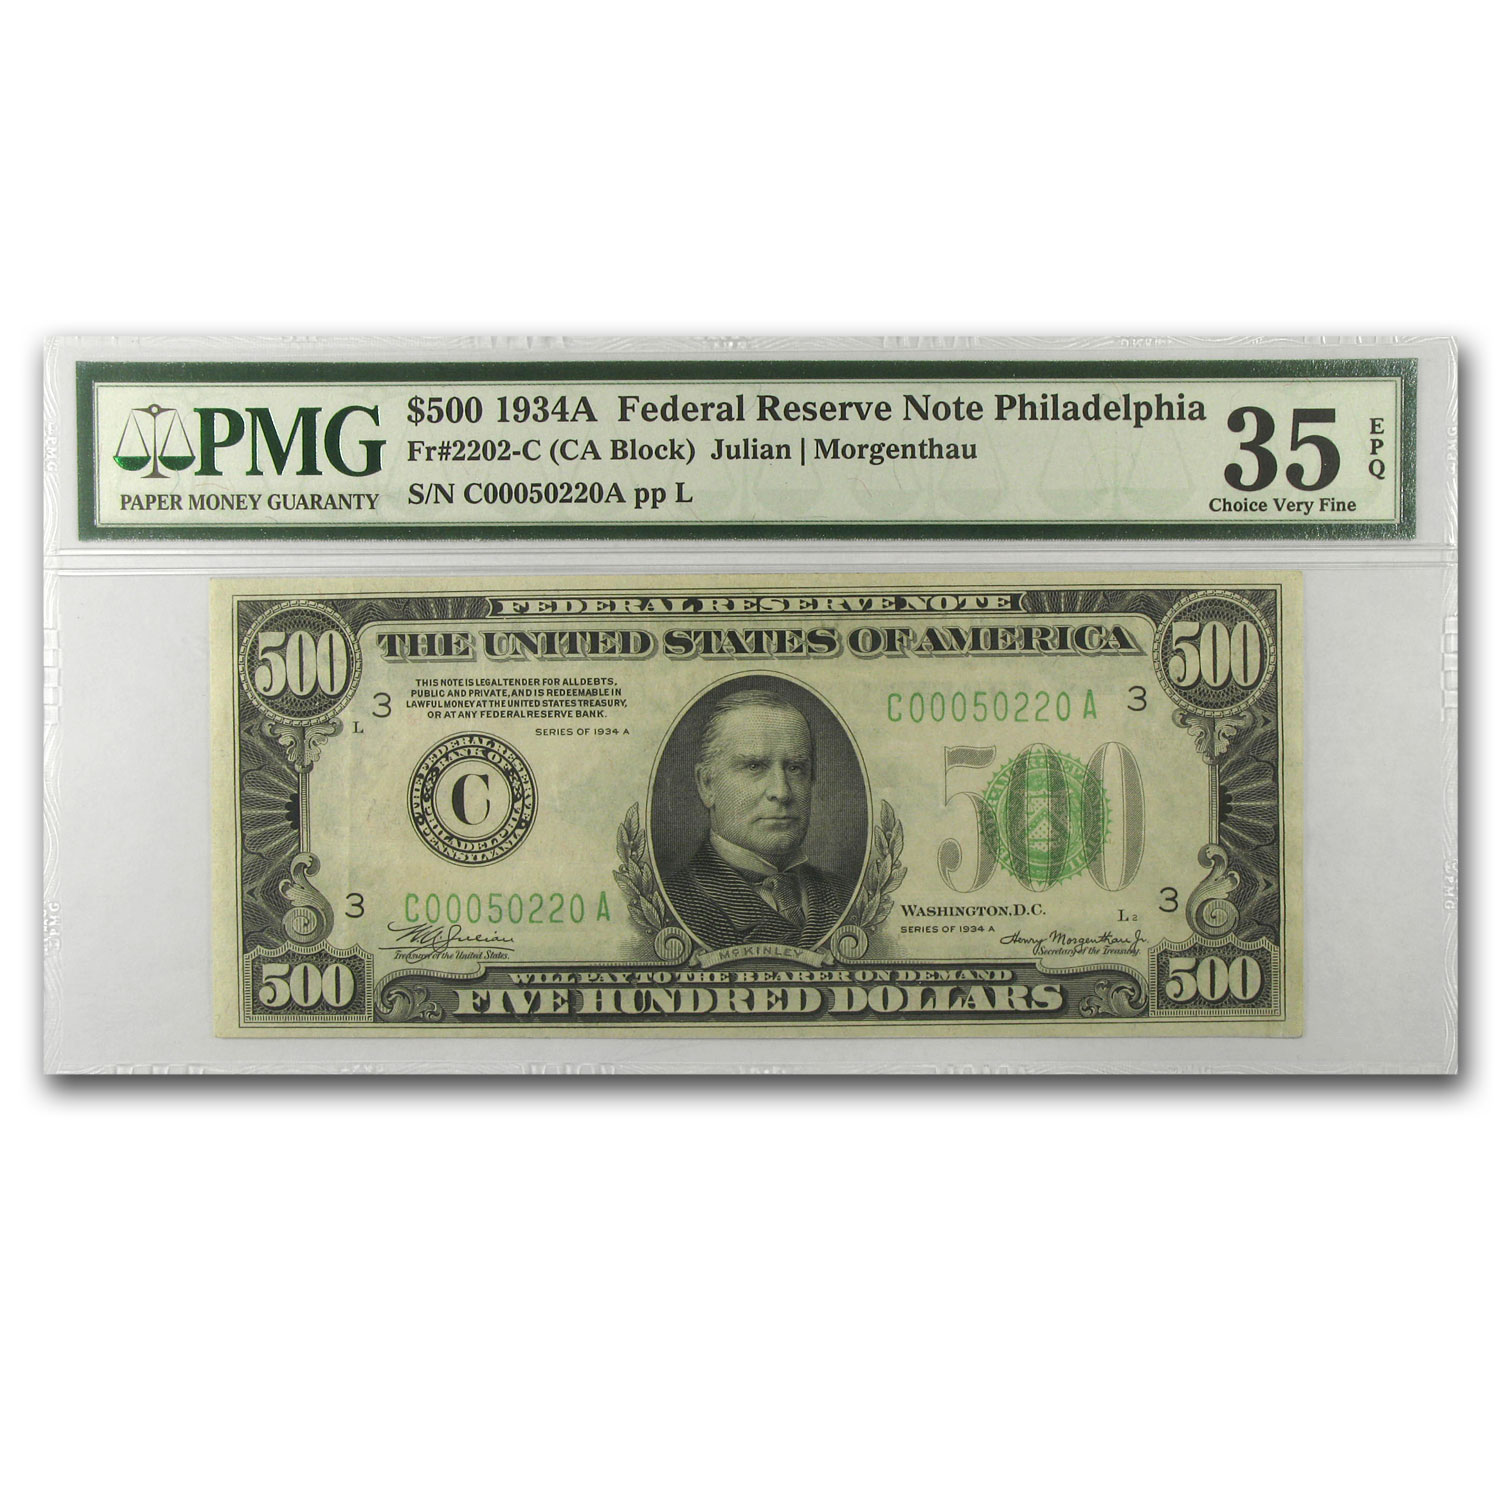 1934-A (G-Chicago) $1,000 FRN PMG Choice (Very Fine) 35 Net)